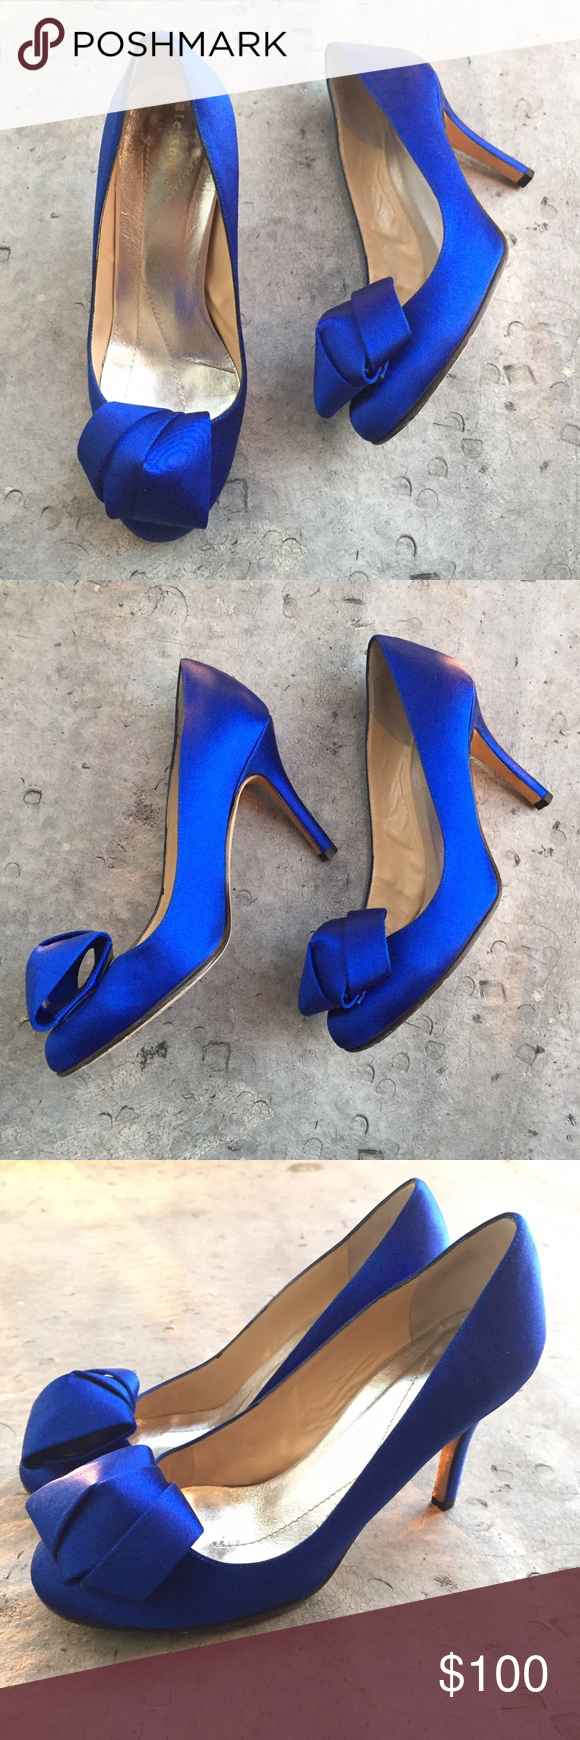 09cbb88cc7ba Kate Spade Blue Satin Ribbon Pumps Gorgeous blue satin Kate Spade heels.  Perfect to wear with a party dress. kate spade Shoes Heels